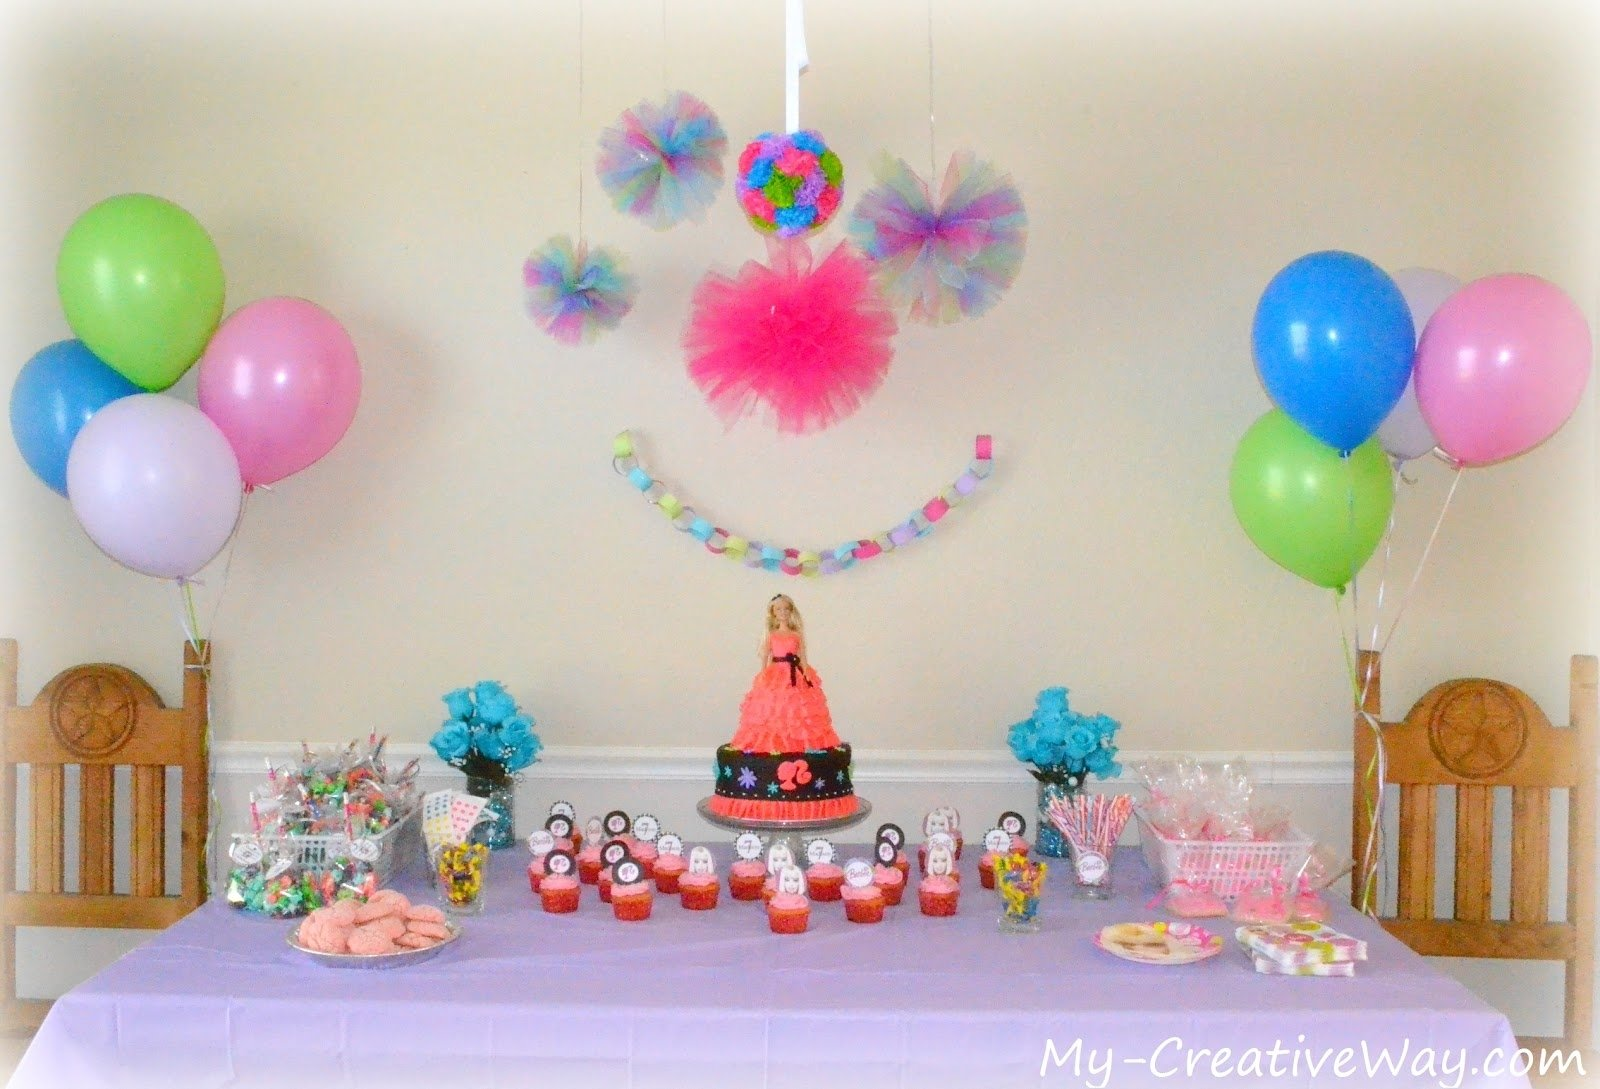 10 cute ideas for birthday parties at home